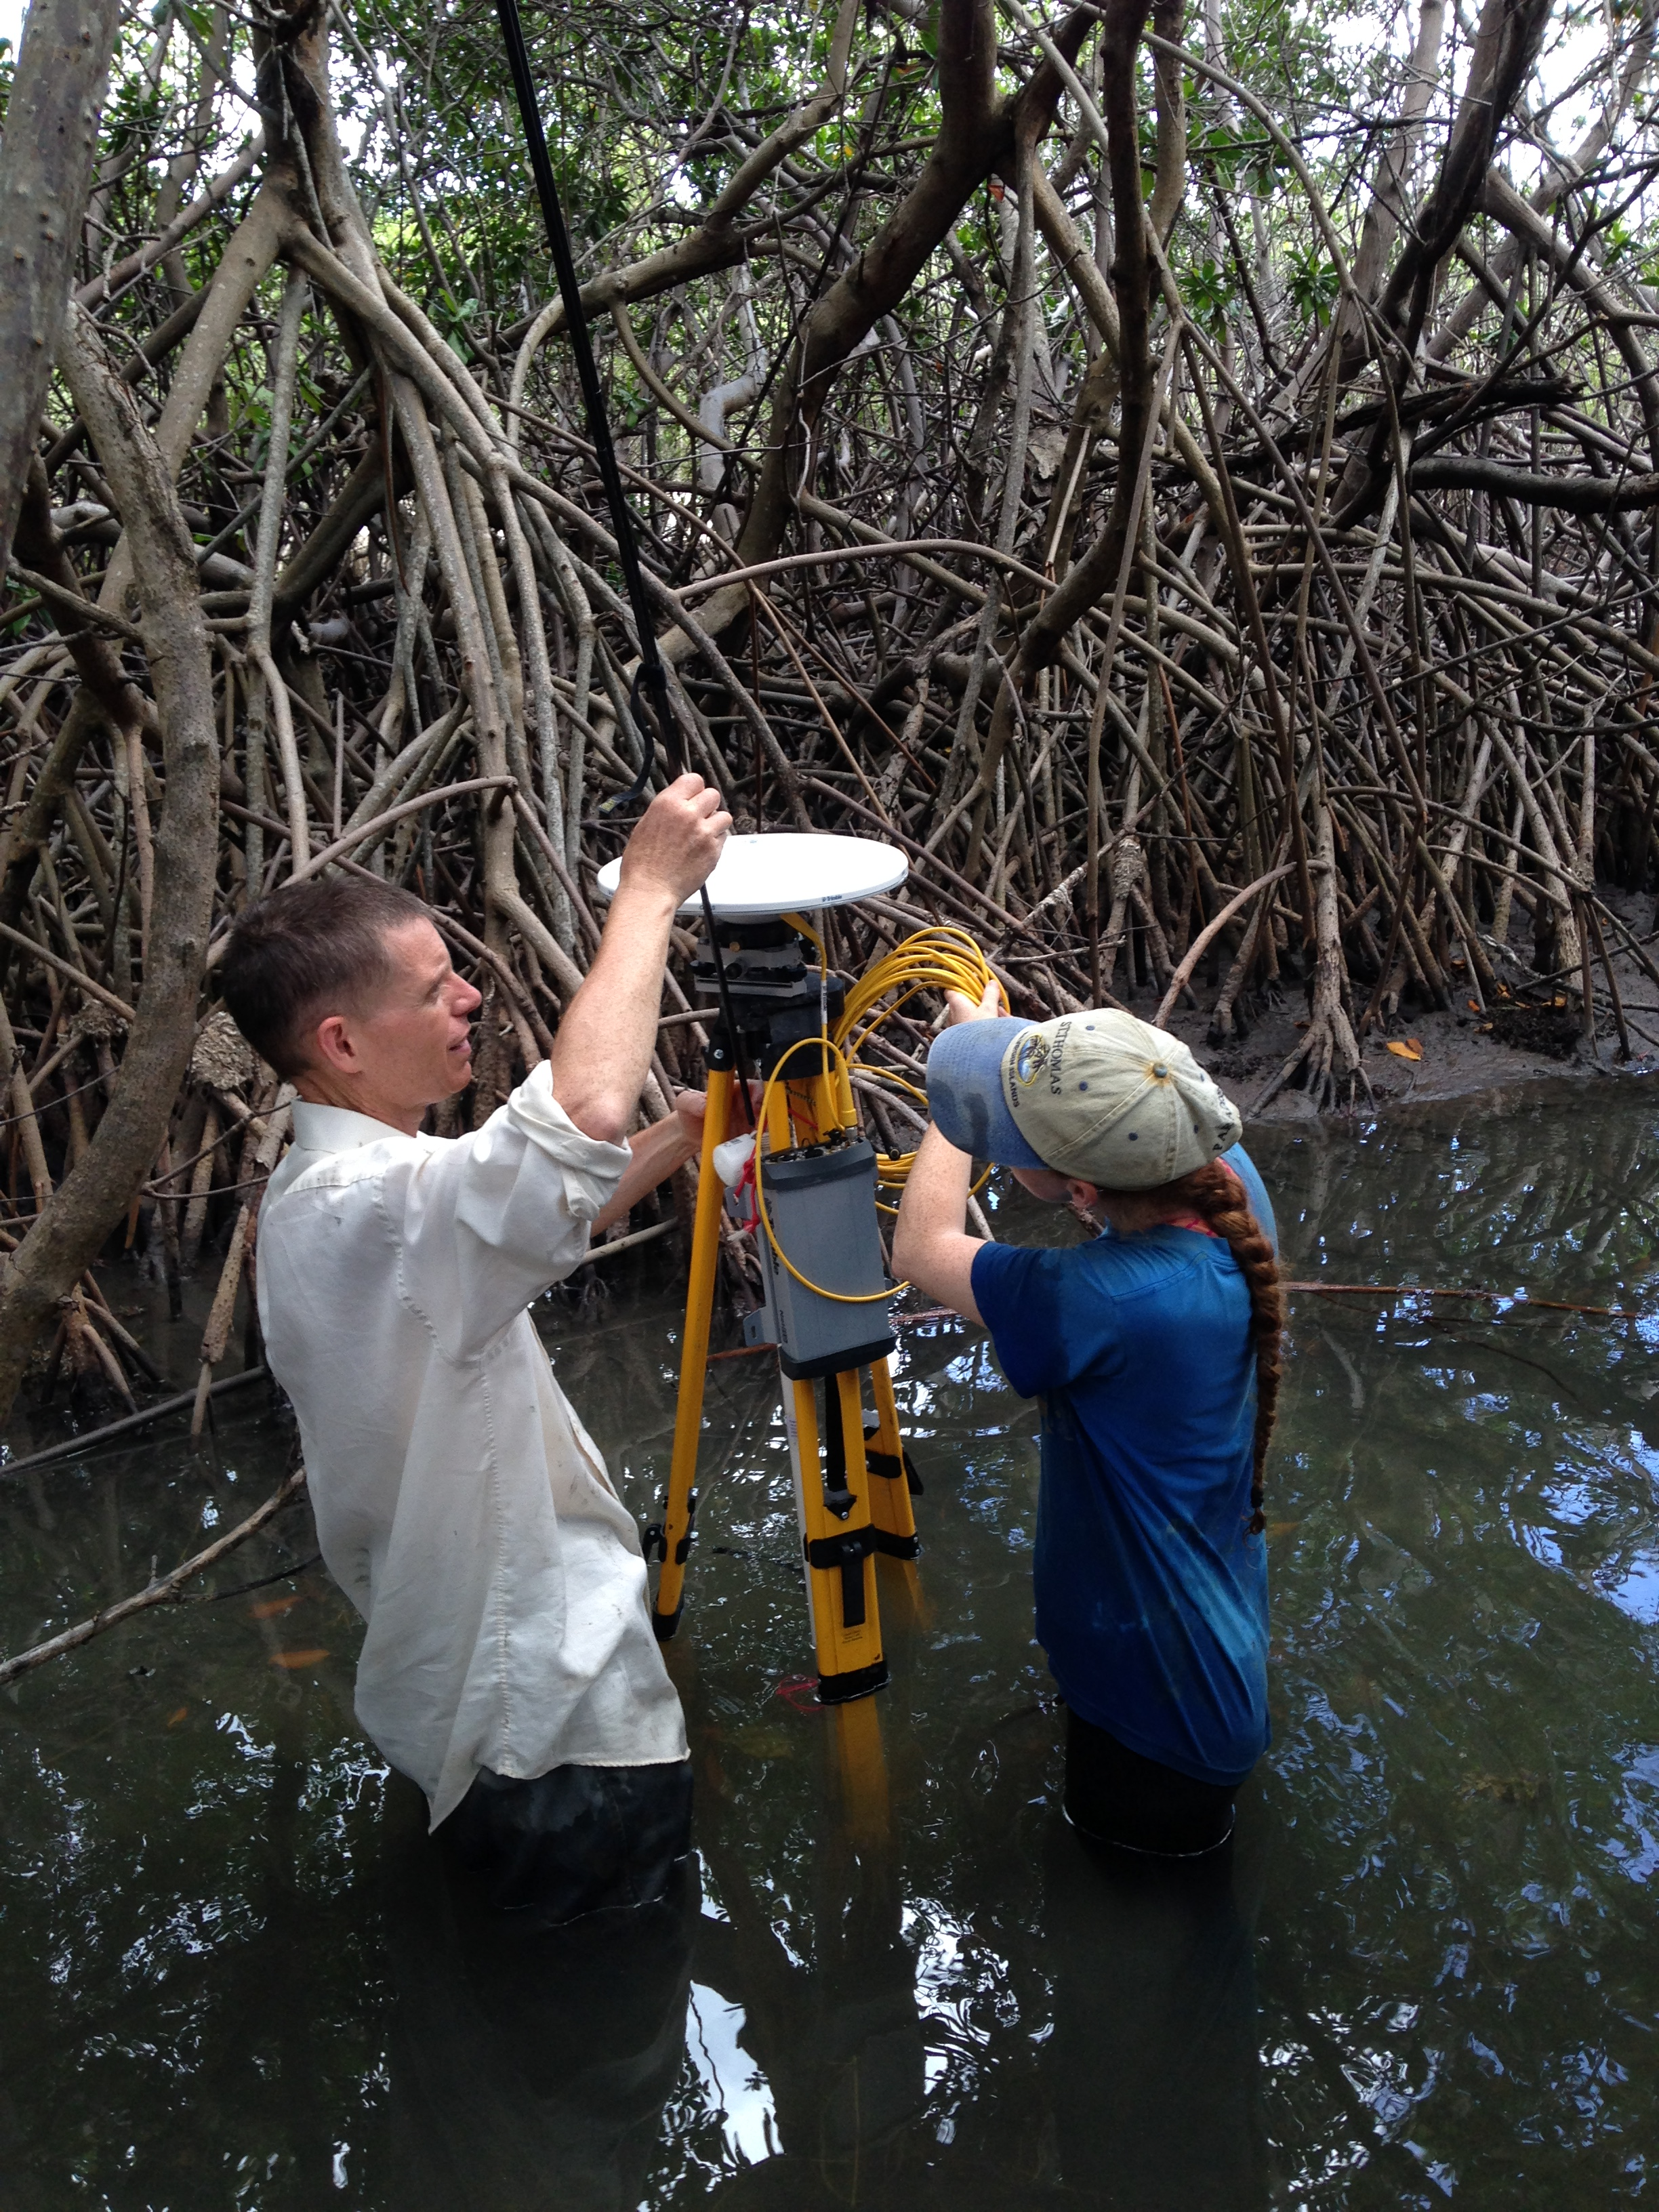 Allie Durdall and Andrew Reeve, Ph.D.setting up the GPS equipment over the groundwater wells to get precise elevations which are needed to understand groundwater movement.